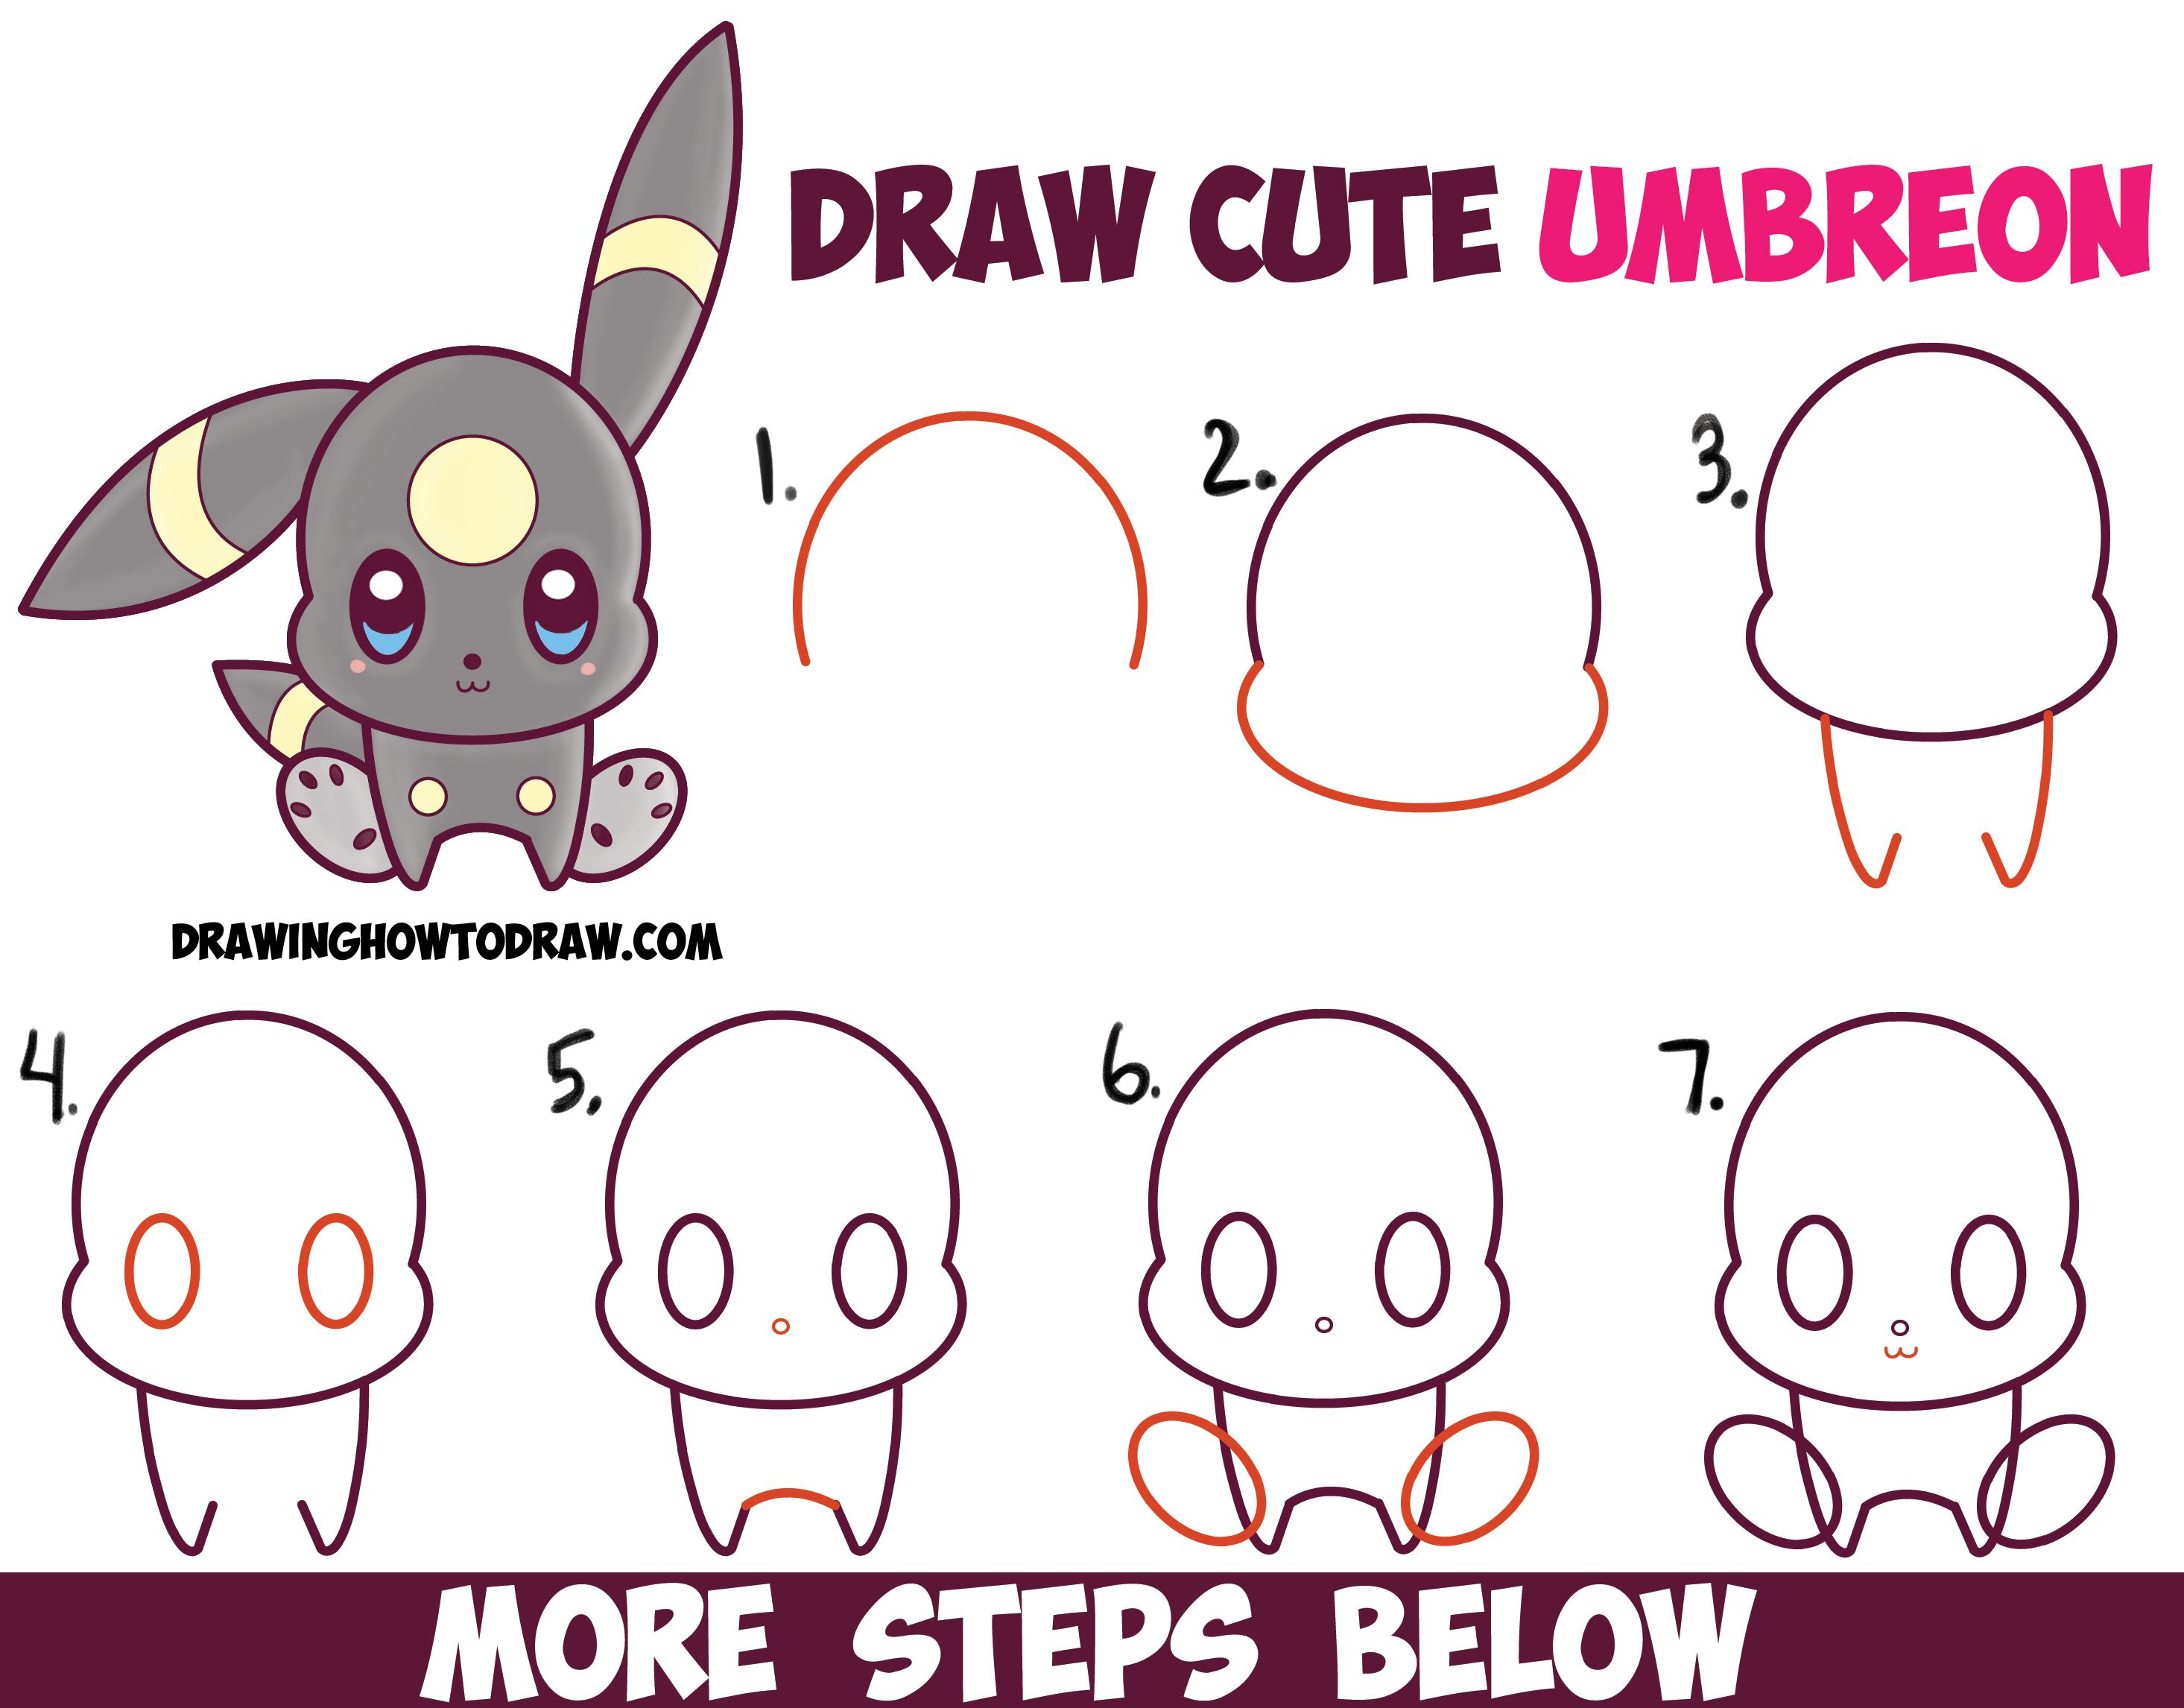 How To Draw Cute Kawaii Chibi Umbreon From Pokemon Easy Step By Step Drawing  Tutorial For